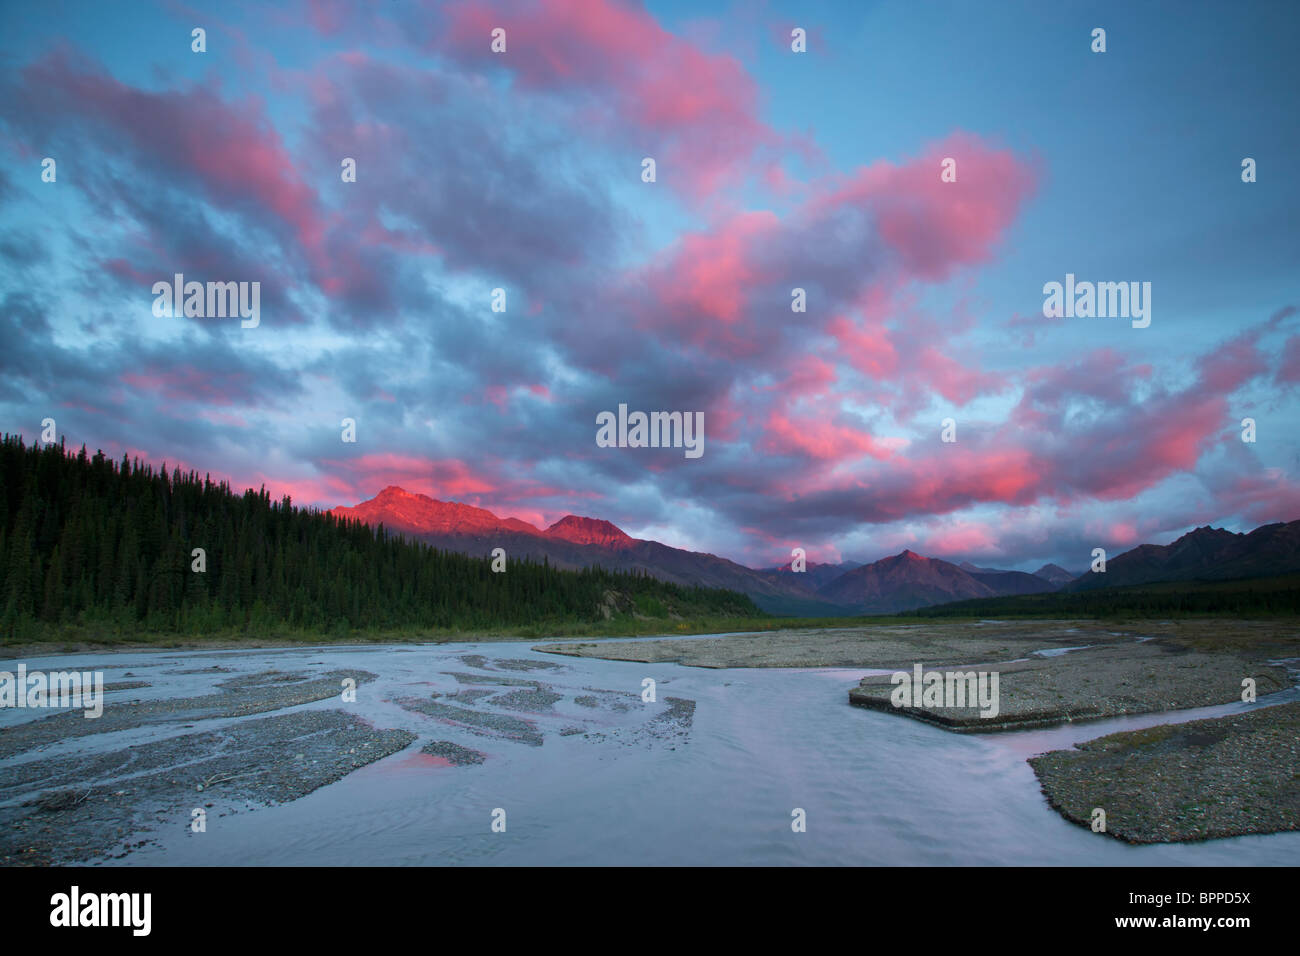 Sunset over the Teklanika River valley, Denali National Park, Alaska. - Stock Image